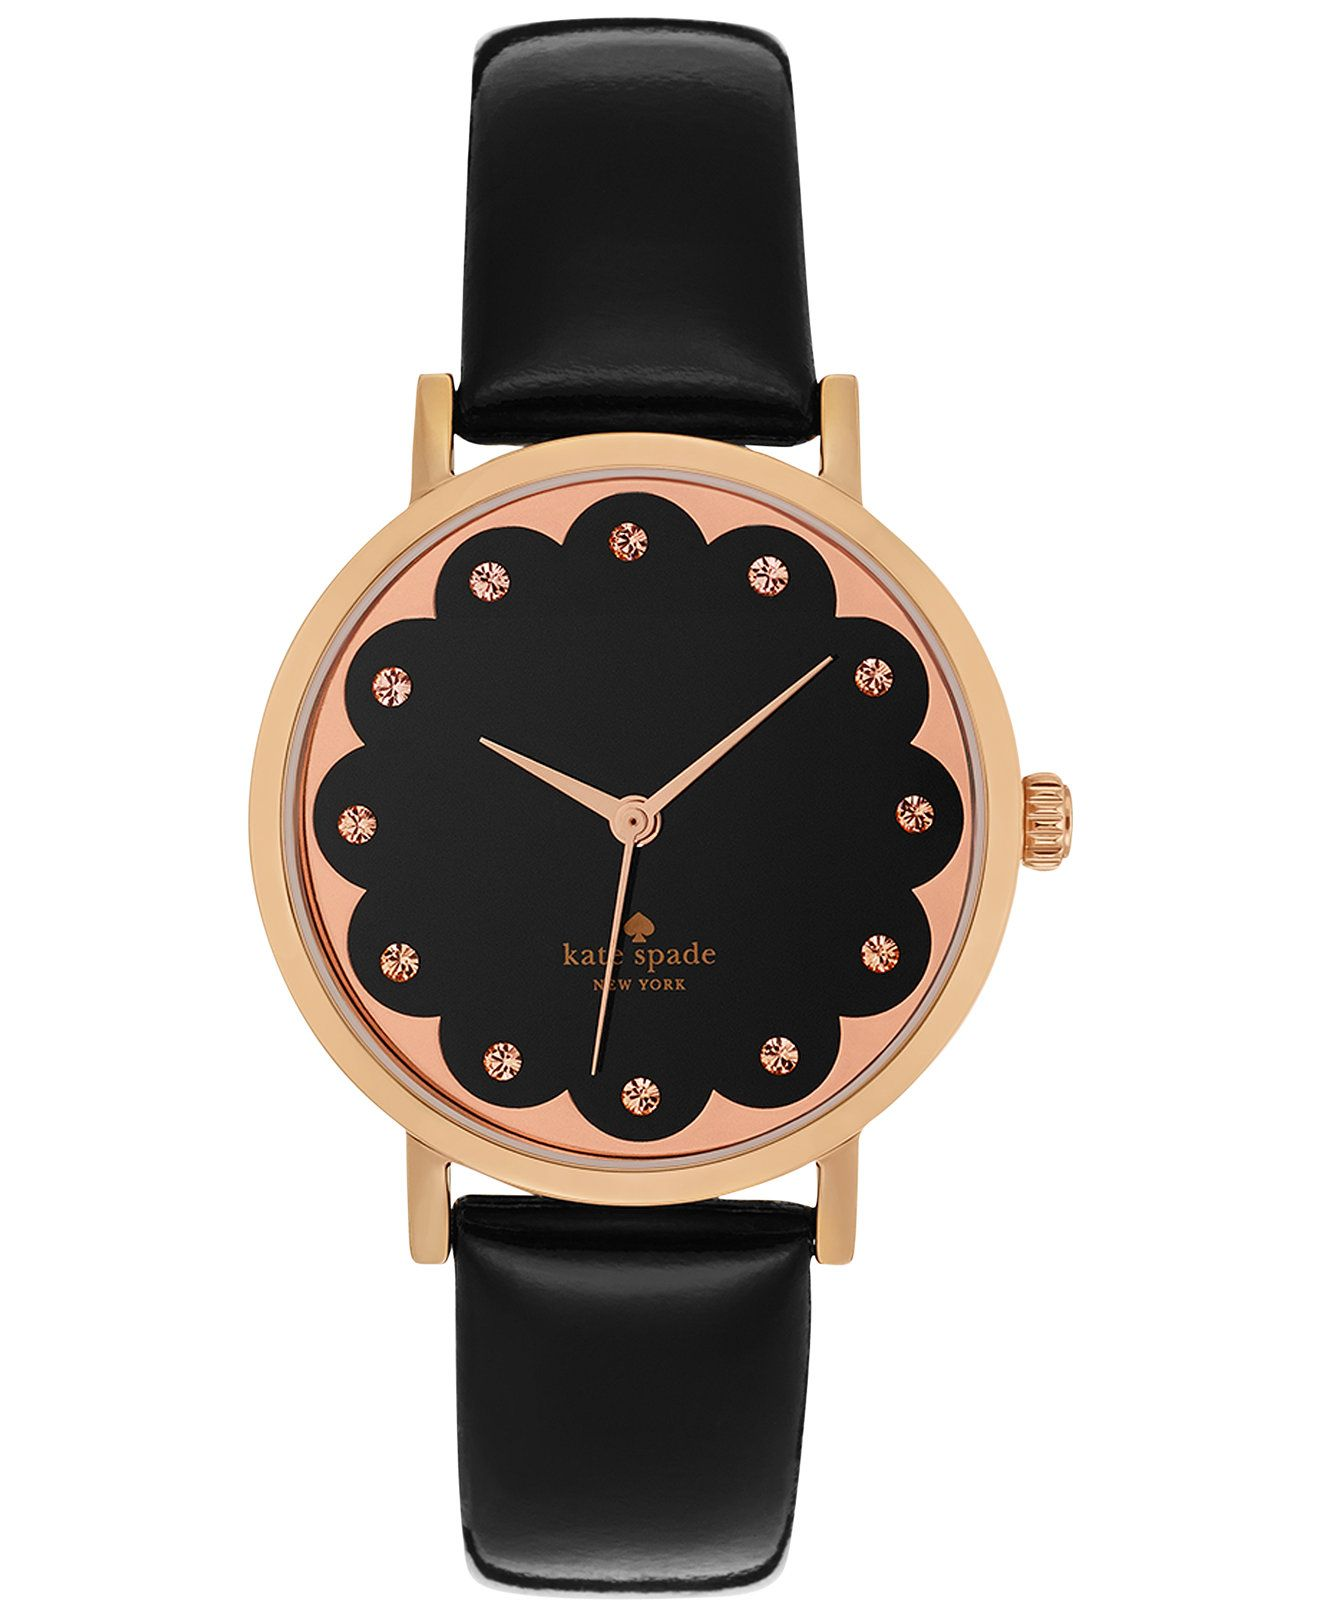 Scalloped watch #sponsored